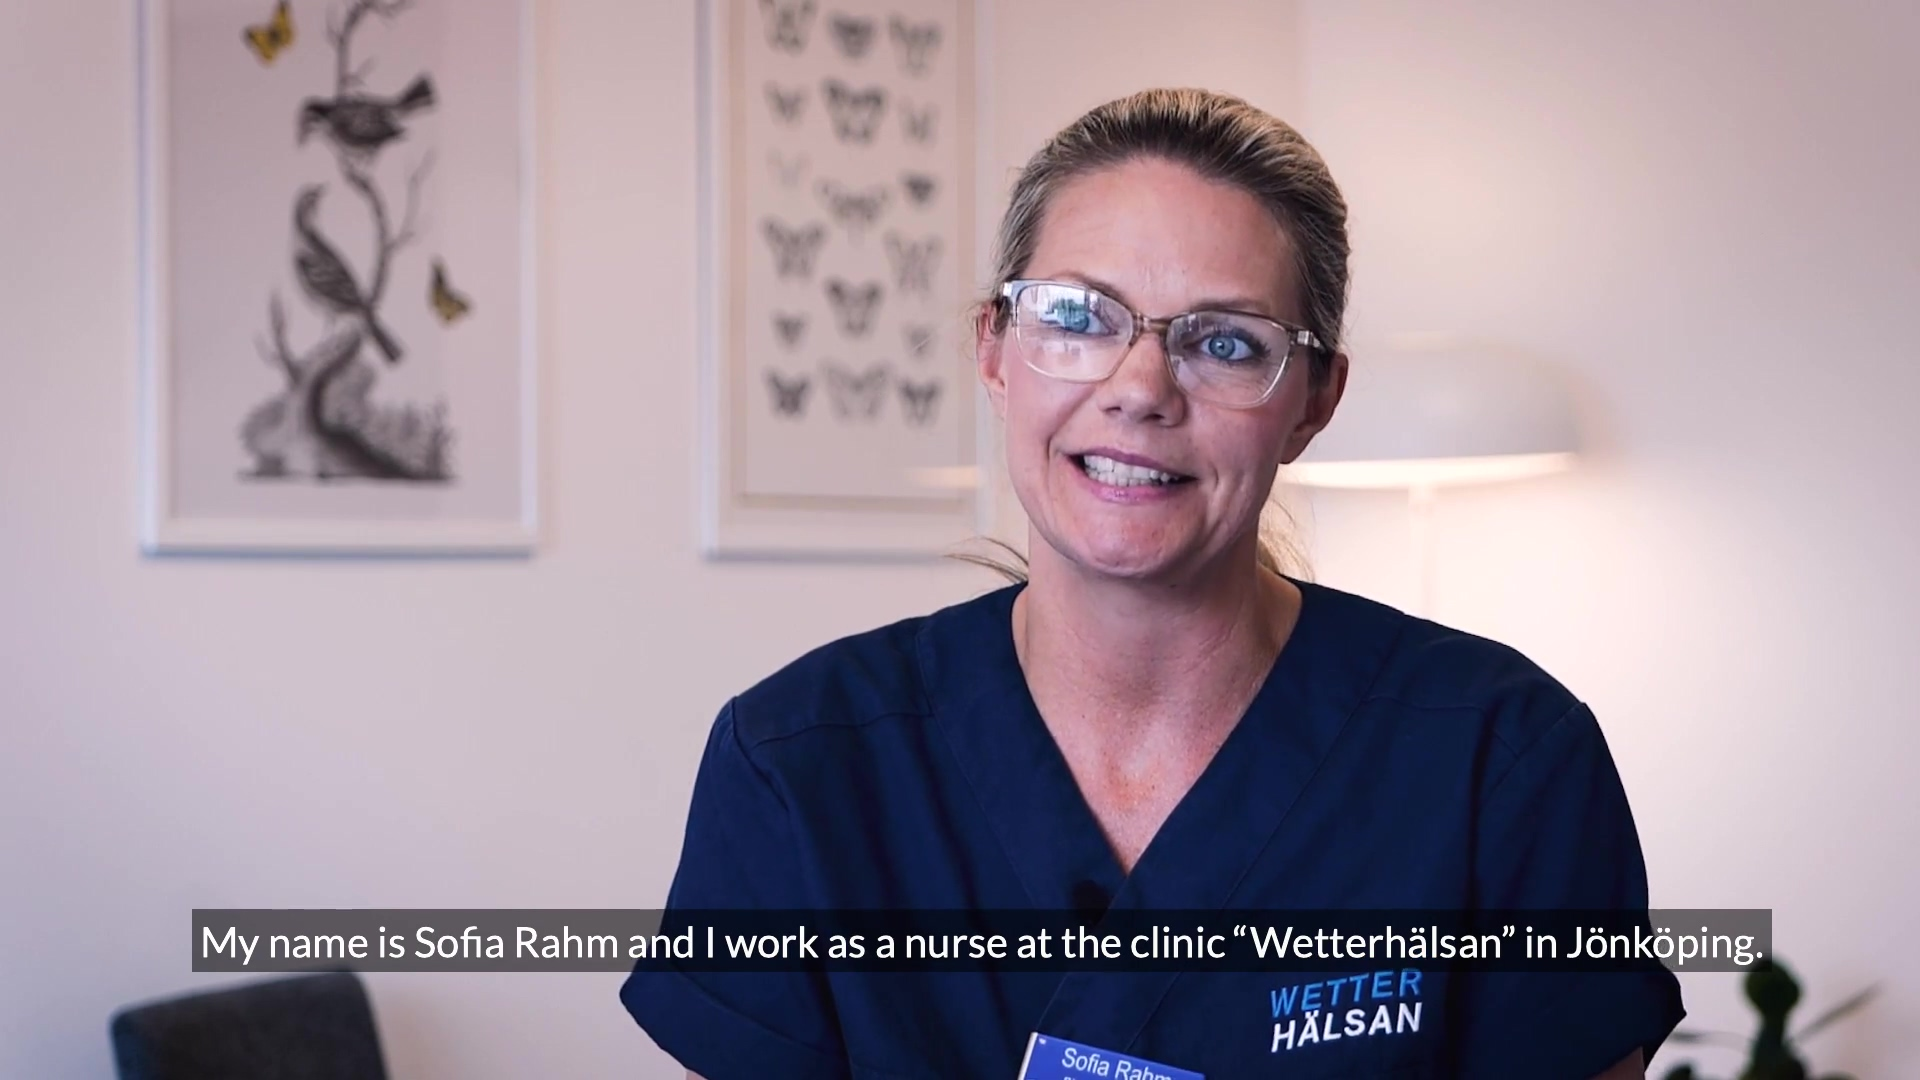 Interview with Wetterhälsan - with English subtitles